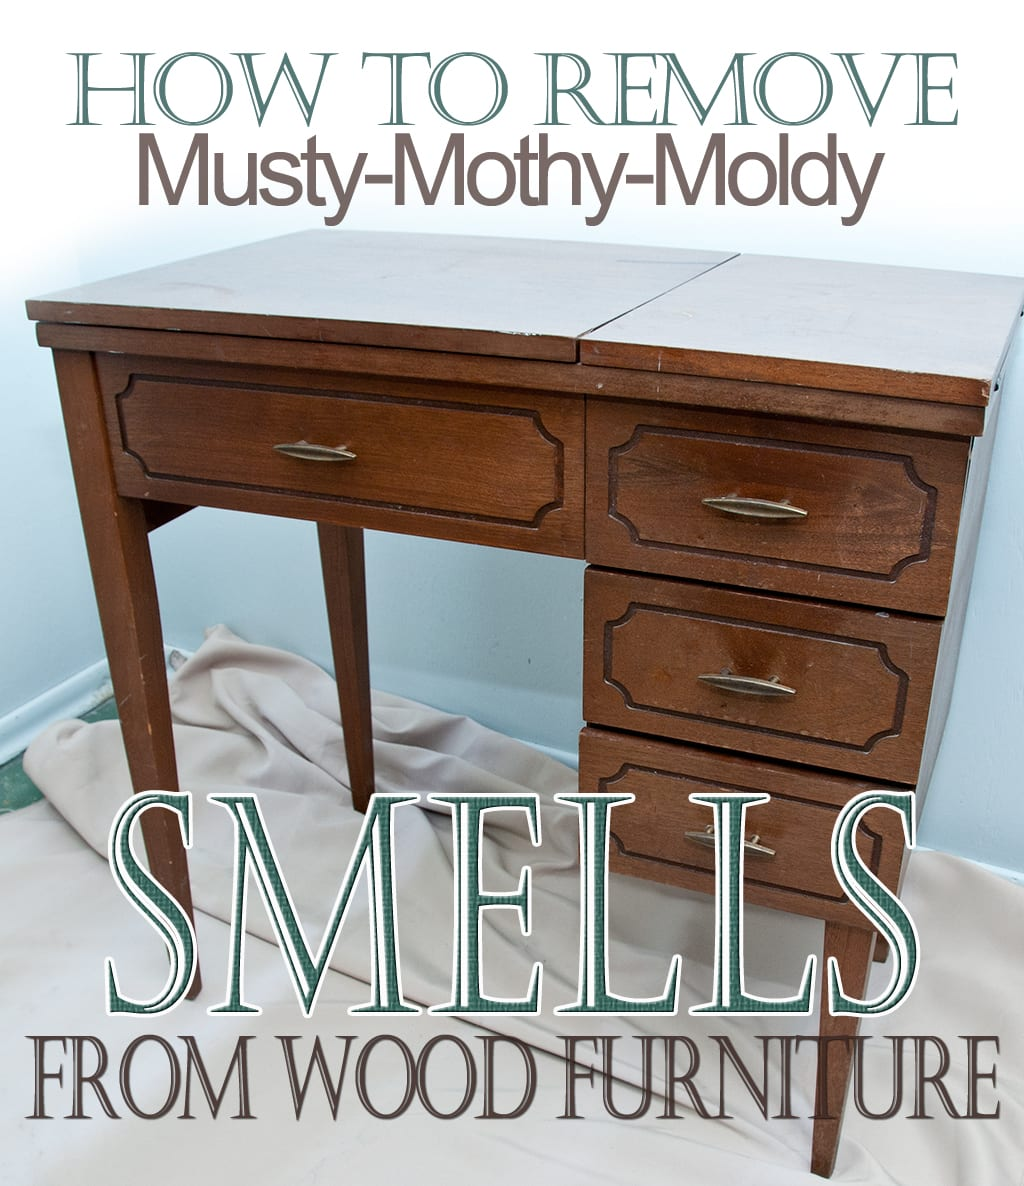 My House Smells Musty What Can I Do My House Smells After Rain OfMy House Smells Musty After Rains   Amazing Bedroom  Living Room  . My House Smells Musty When It Rains. Home Design Ideas